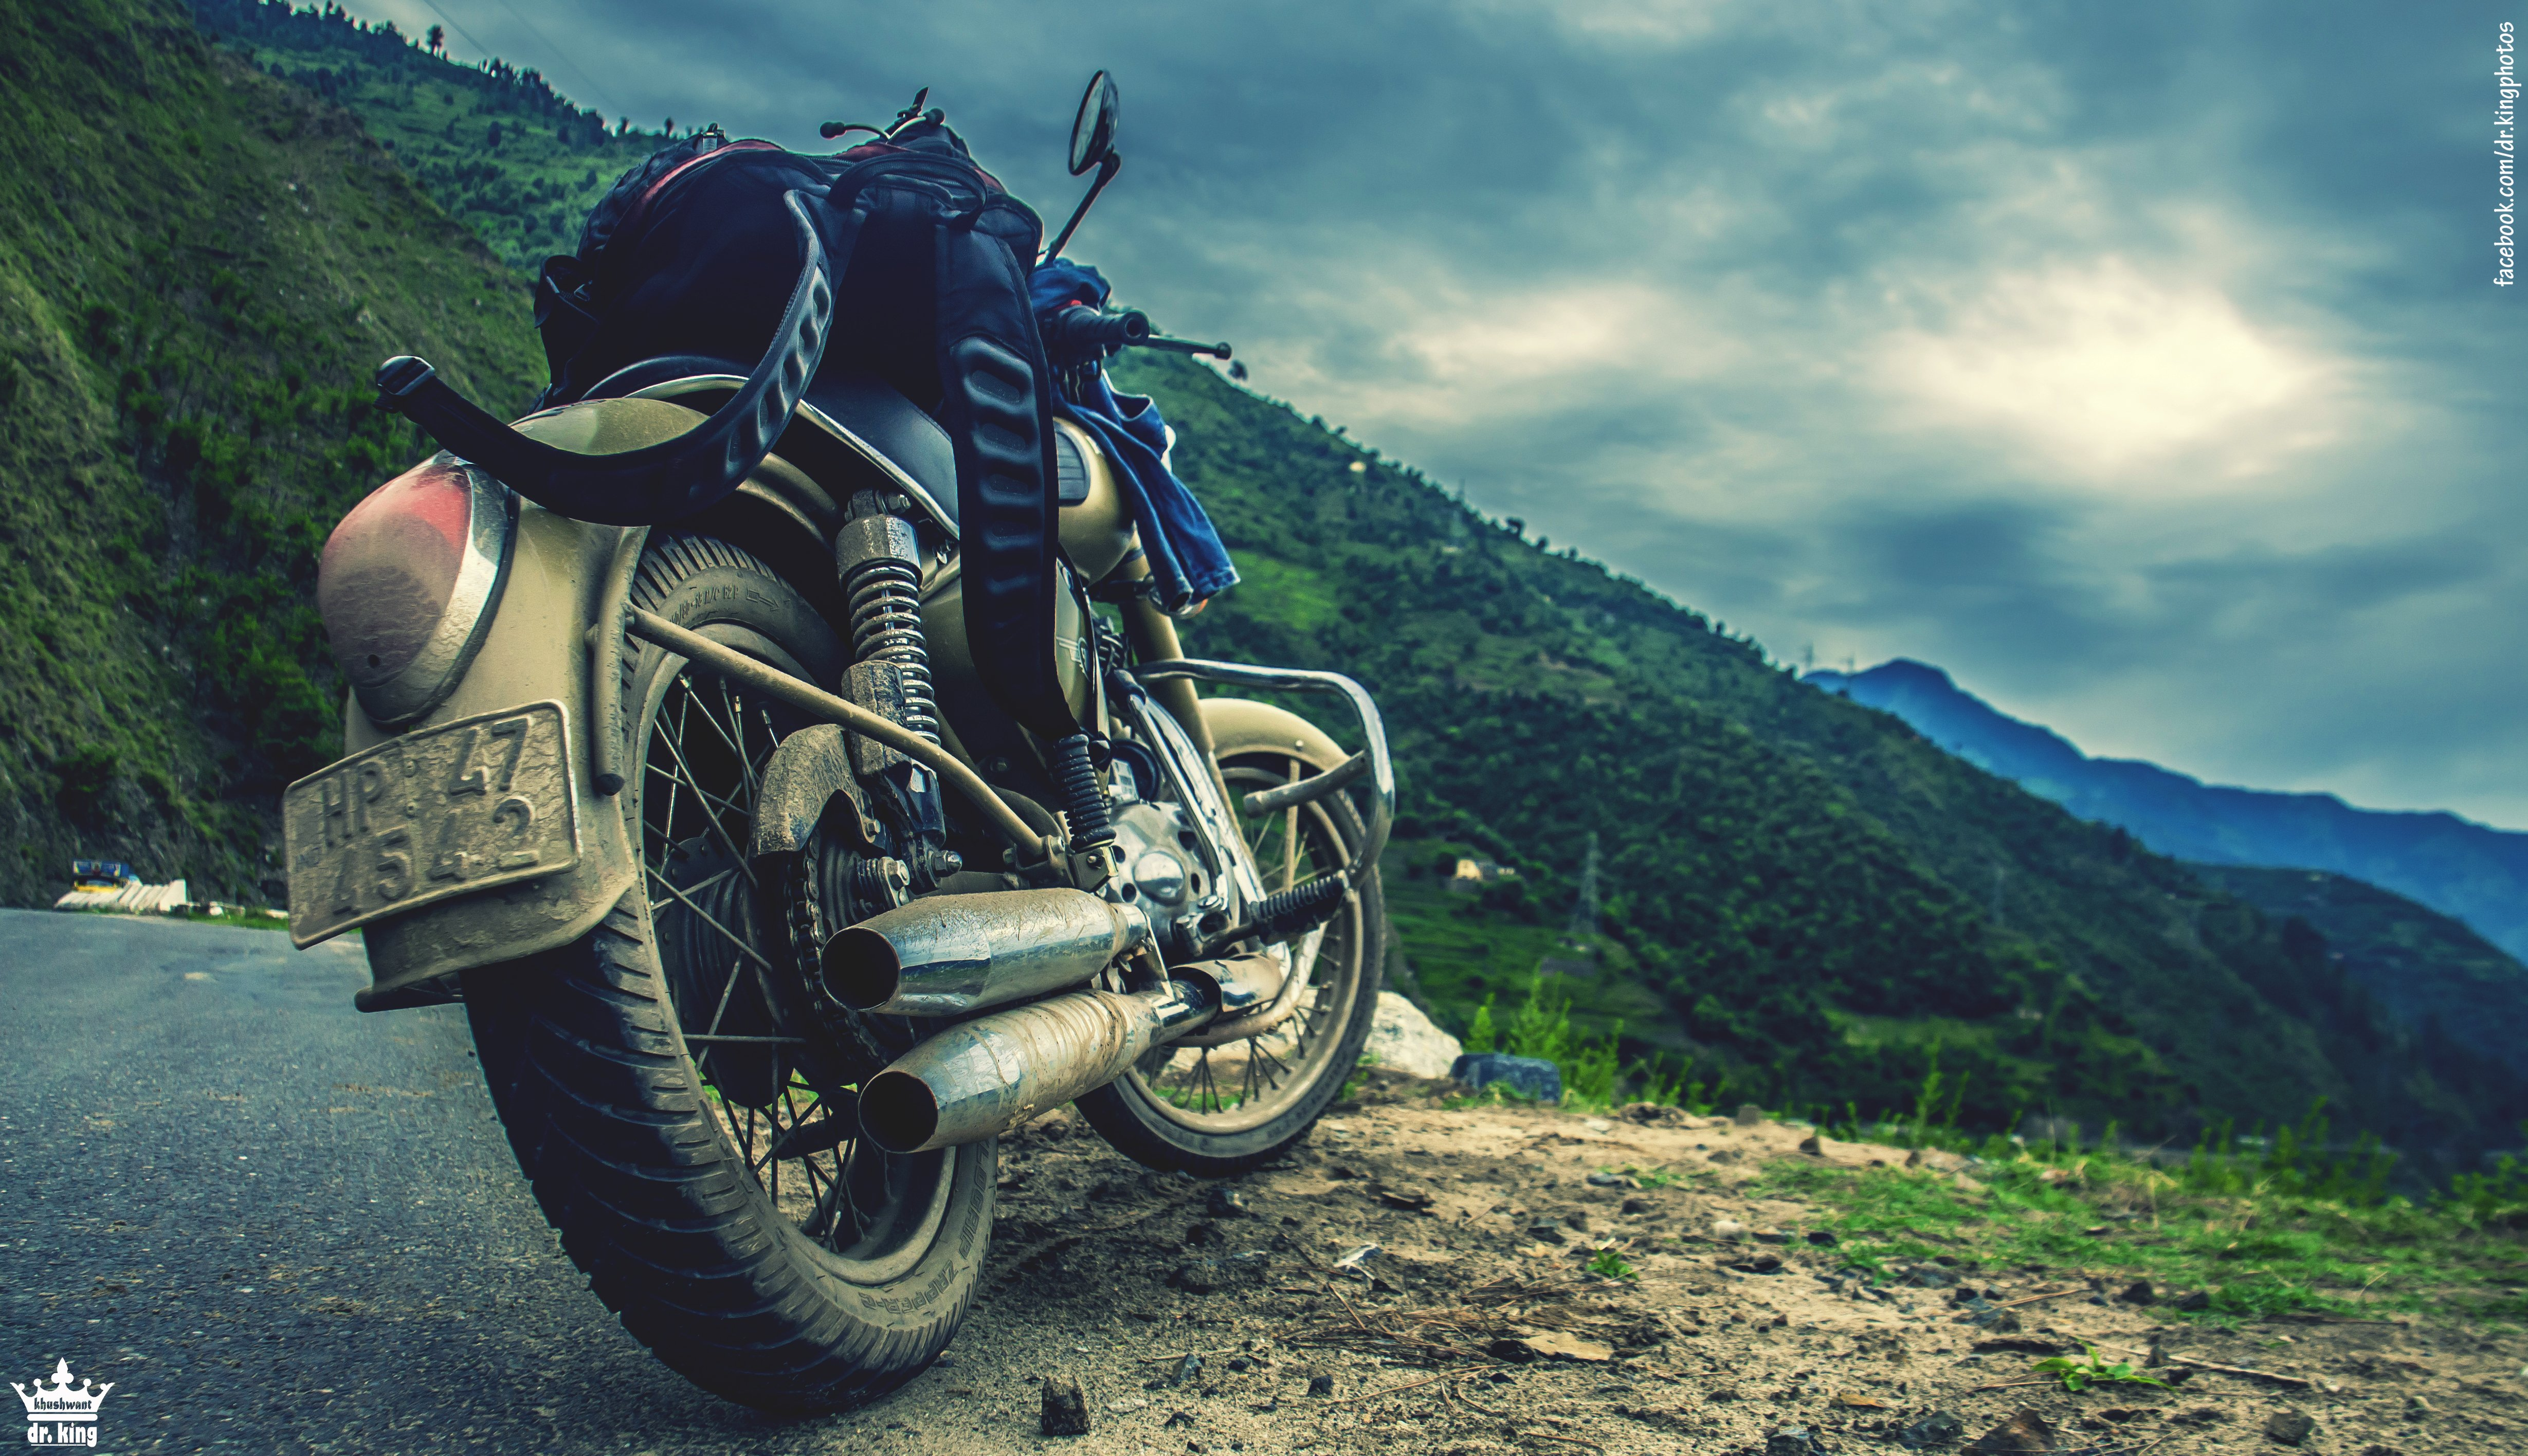 Motorcycle Images Wallpaper